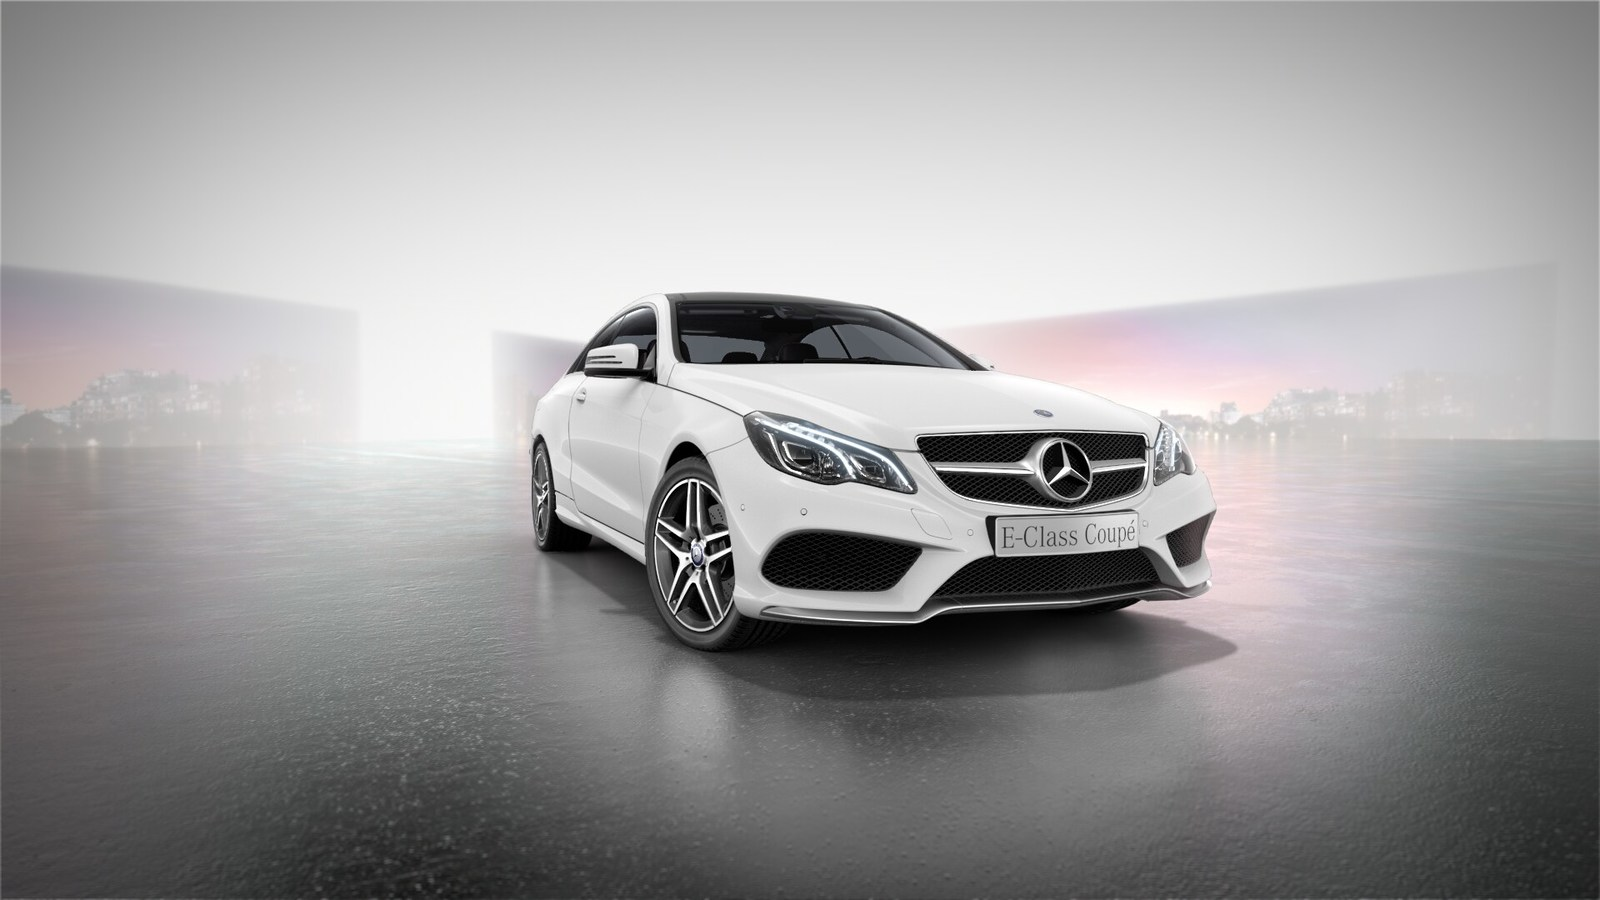 new mercedes-benz e-class coupe | o'regan's mercedes-benz